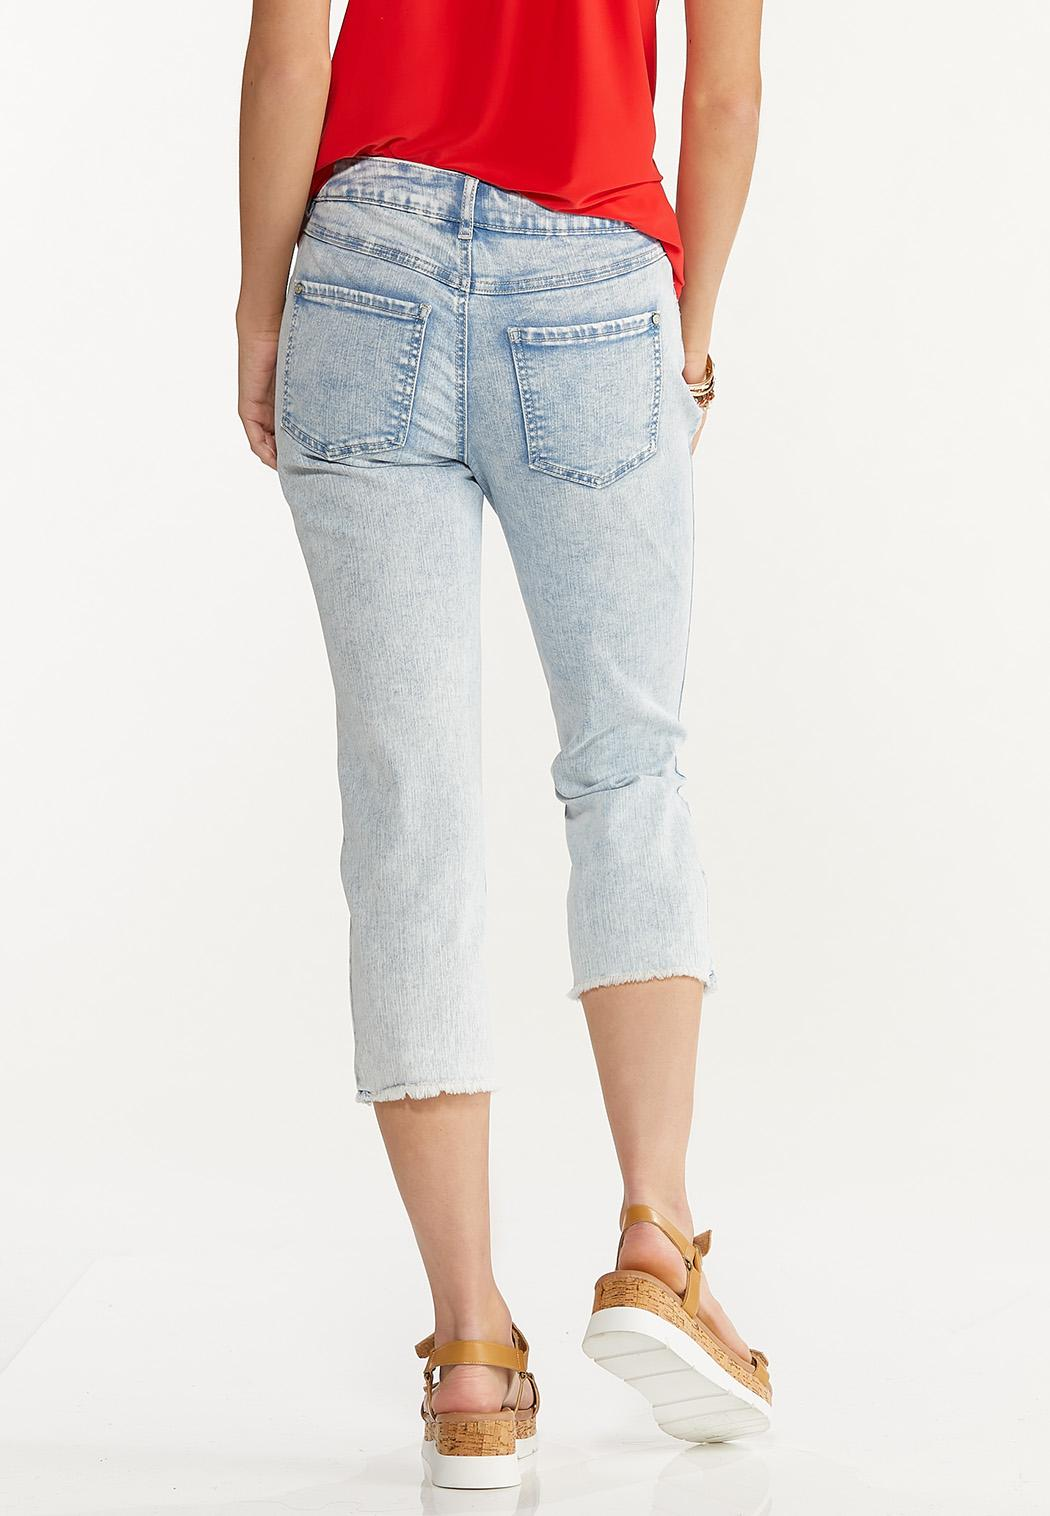 Cropped Distressed Girlfriend Jeans (Item #44598243)